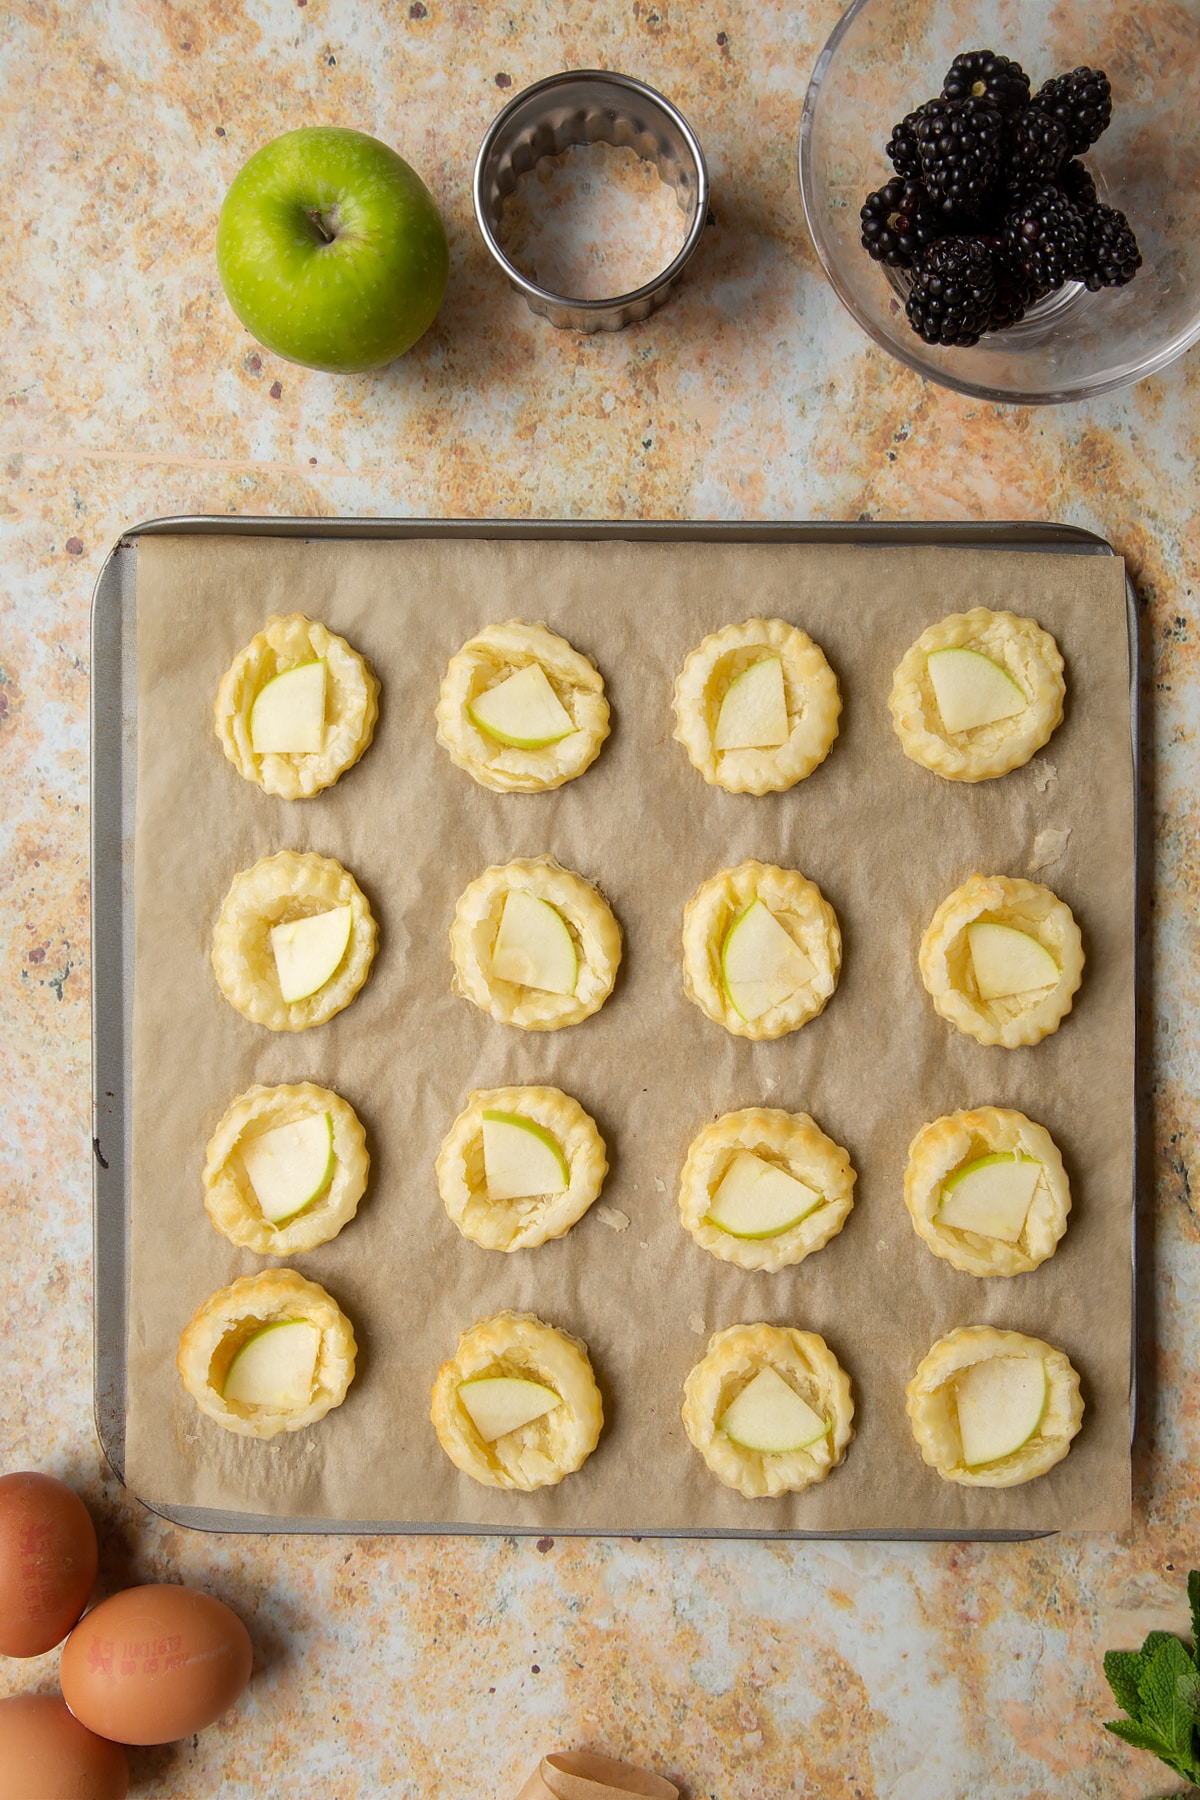 16 puff pastry discs topped with sliced apple sit on a lined baking sheet.